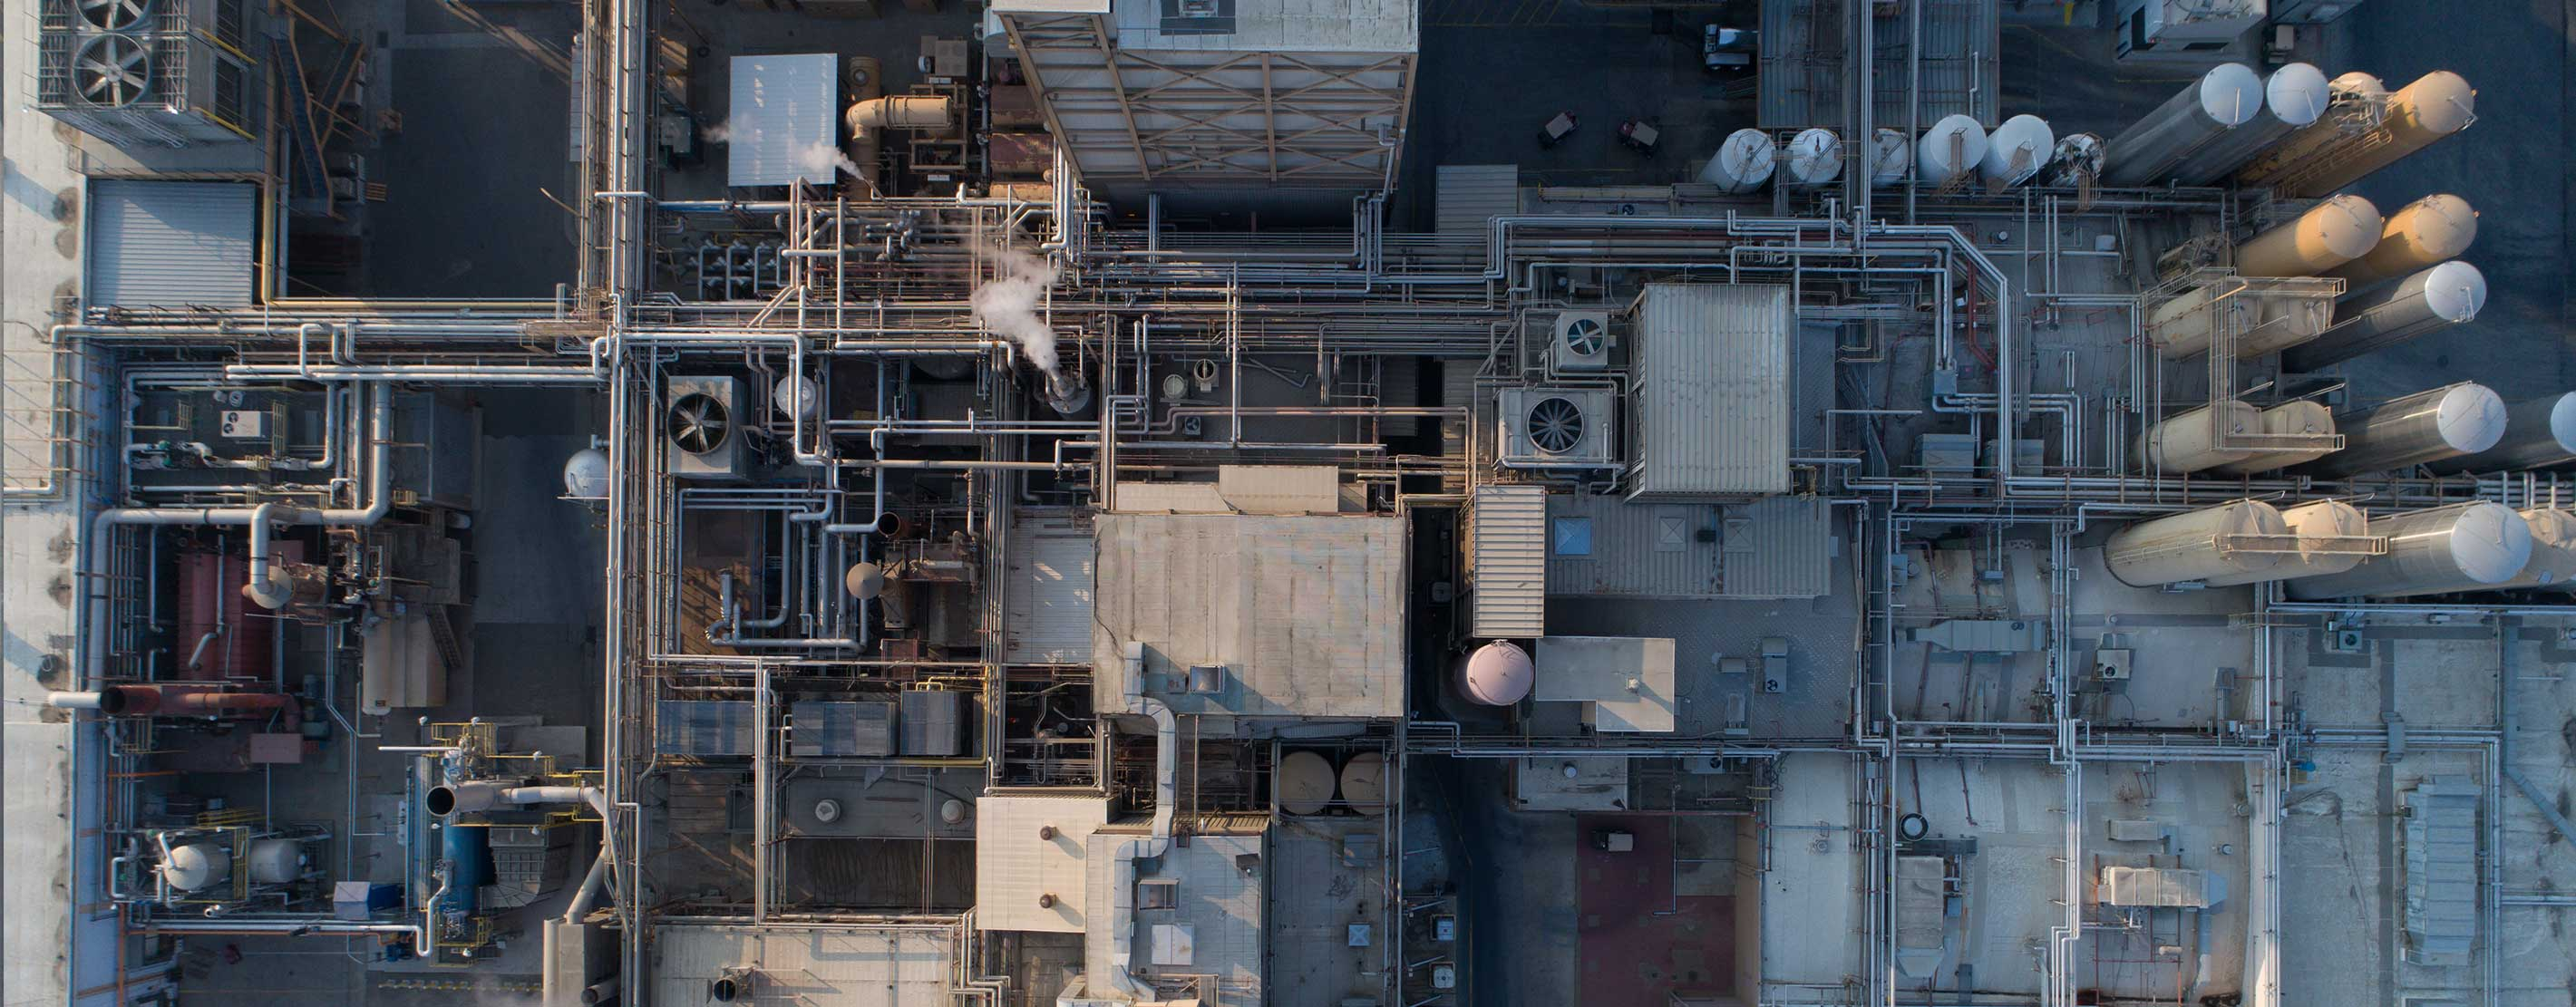 An Aerial View Of A Food Processing Plant